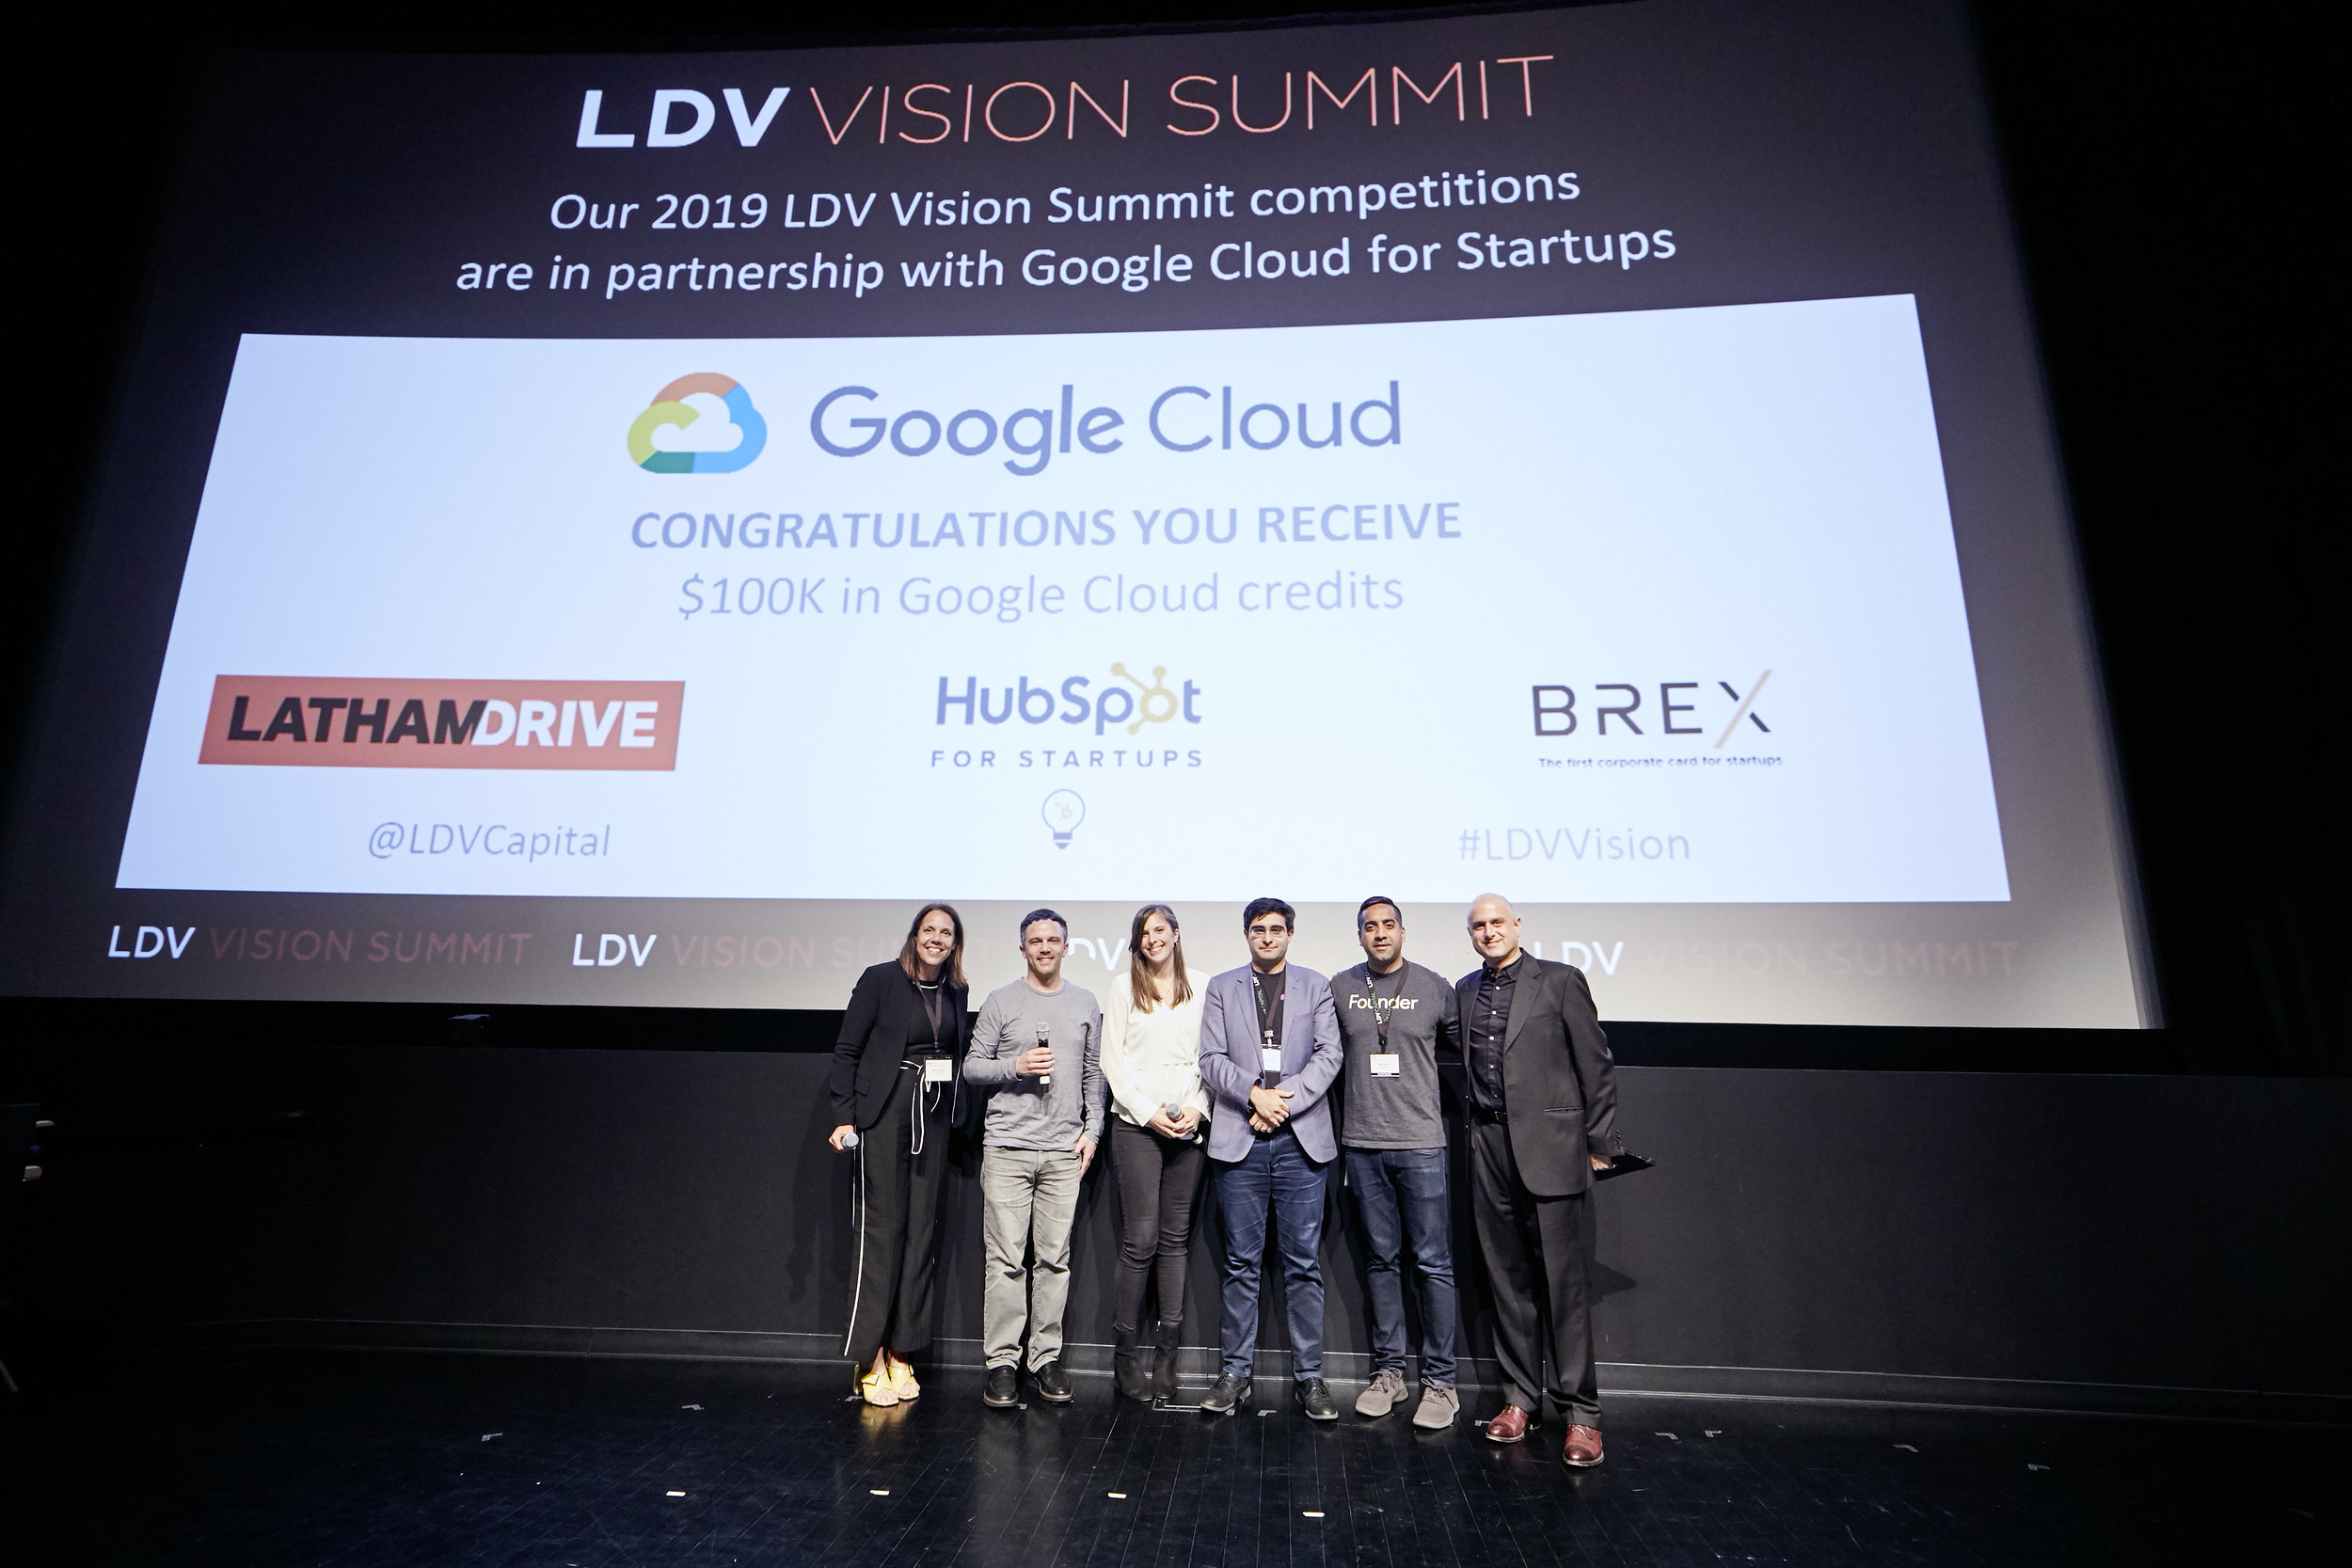 Celebrating Shapes AI's victory in the 2019 Startup Competition [L to R] Rebecca Paoletti of CakeWorks, Serge Belongie of Cornell Tech, Abby Hunter-Syed of LDV Capital, Seena Rejal of Shapes AI, Tejpaul Bhatia of Google Cloud and Evan Nisselson of LDV Capital ©Robert Wright/LDV Vision Summit 2019